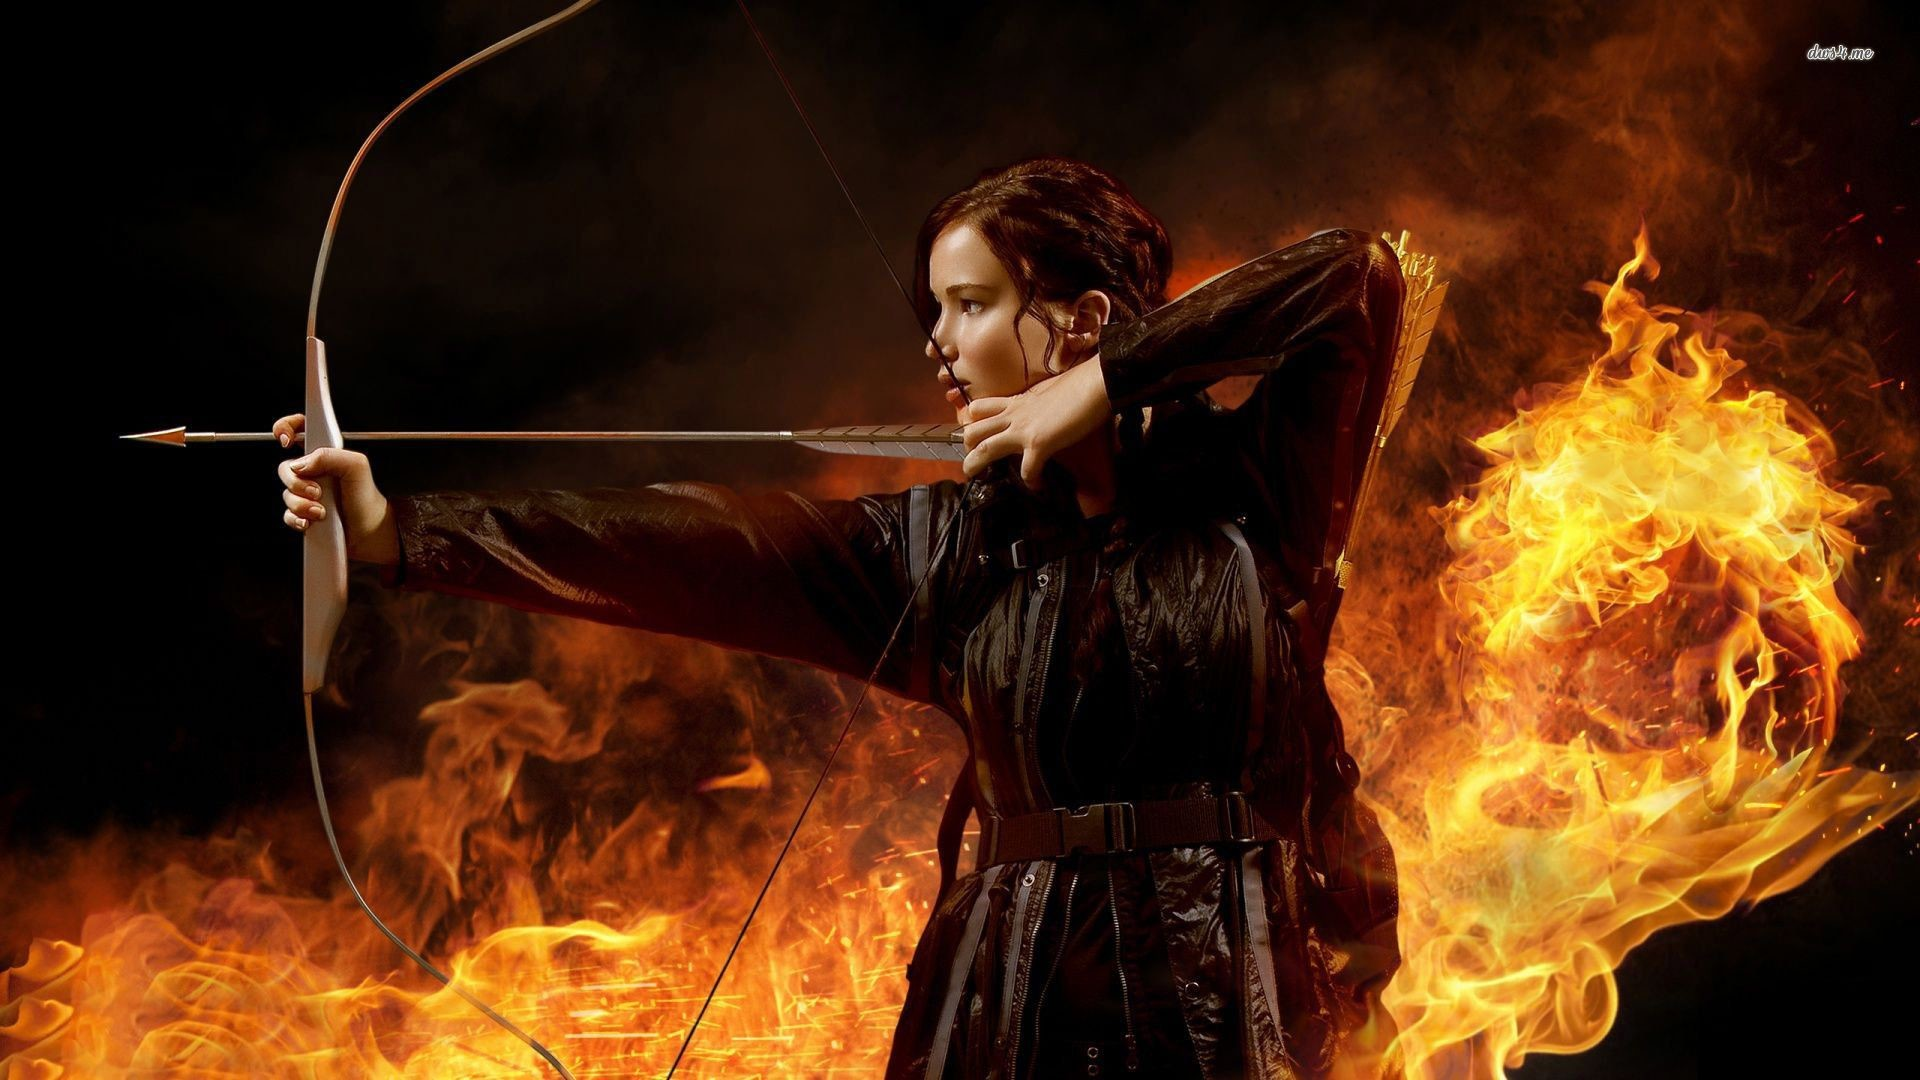 1920x1080 Jennifer Lawrence as Katniss in The Hunger Games wallpaper - Movie .